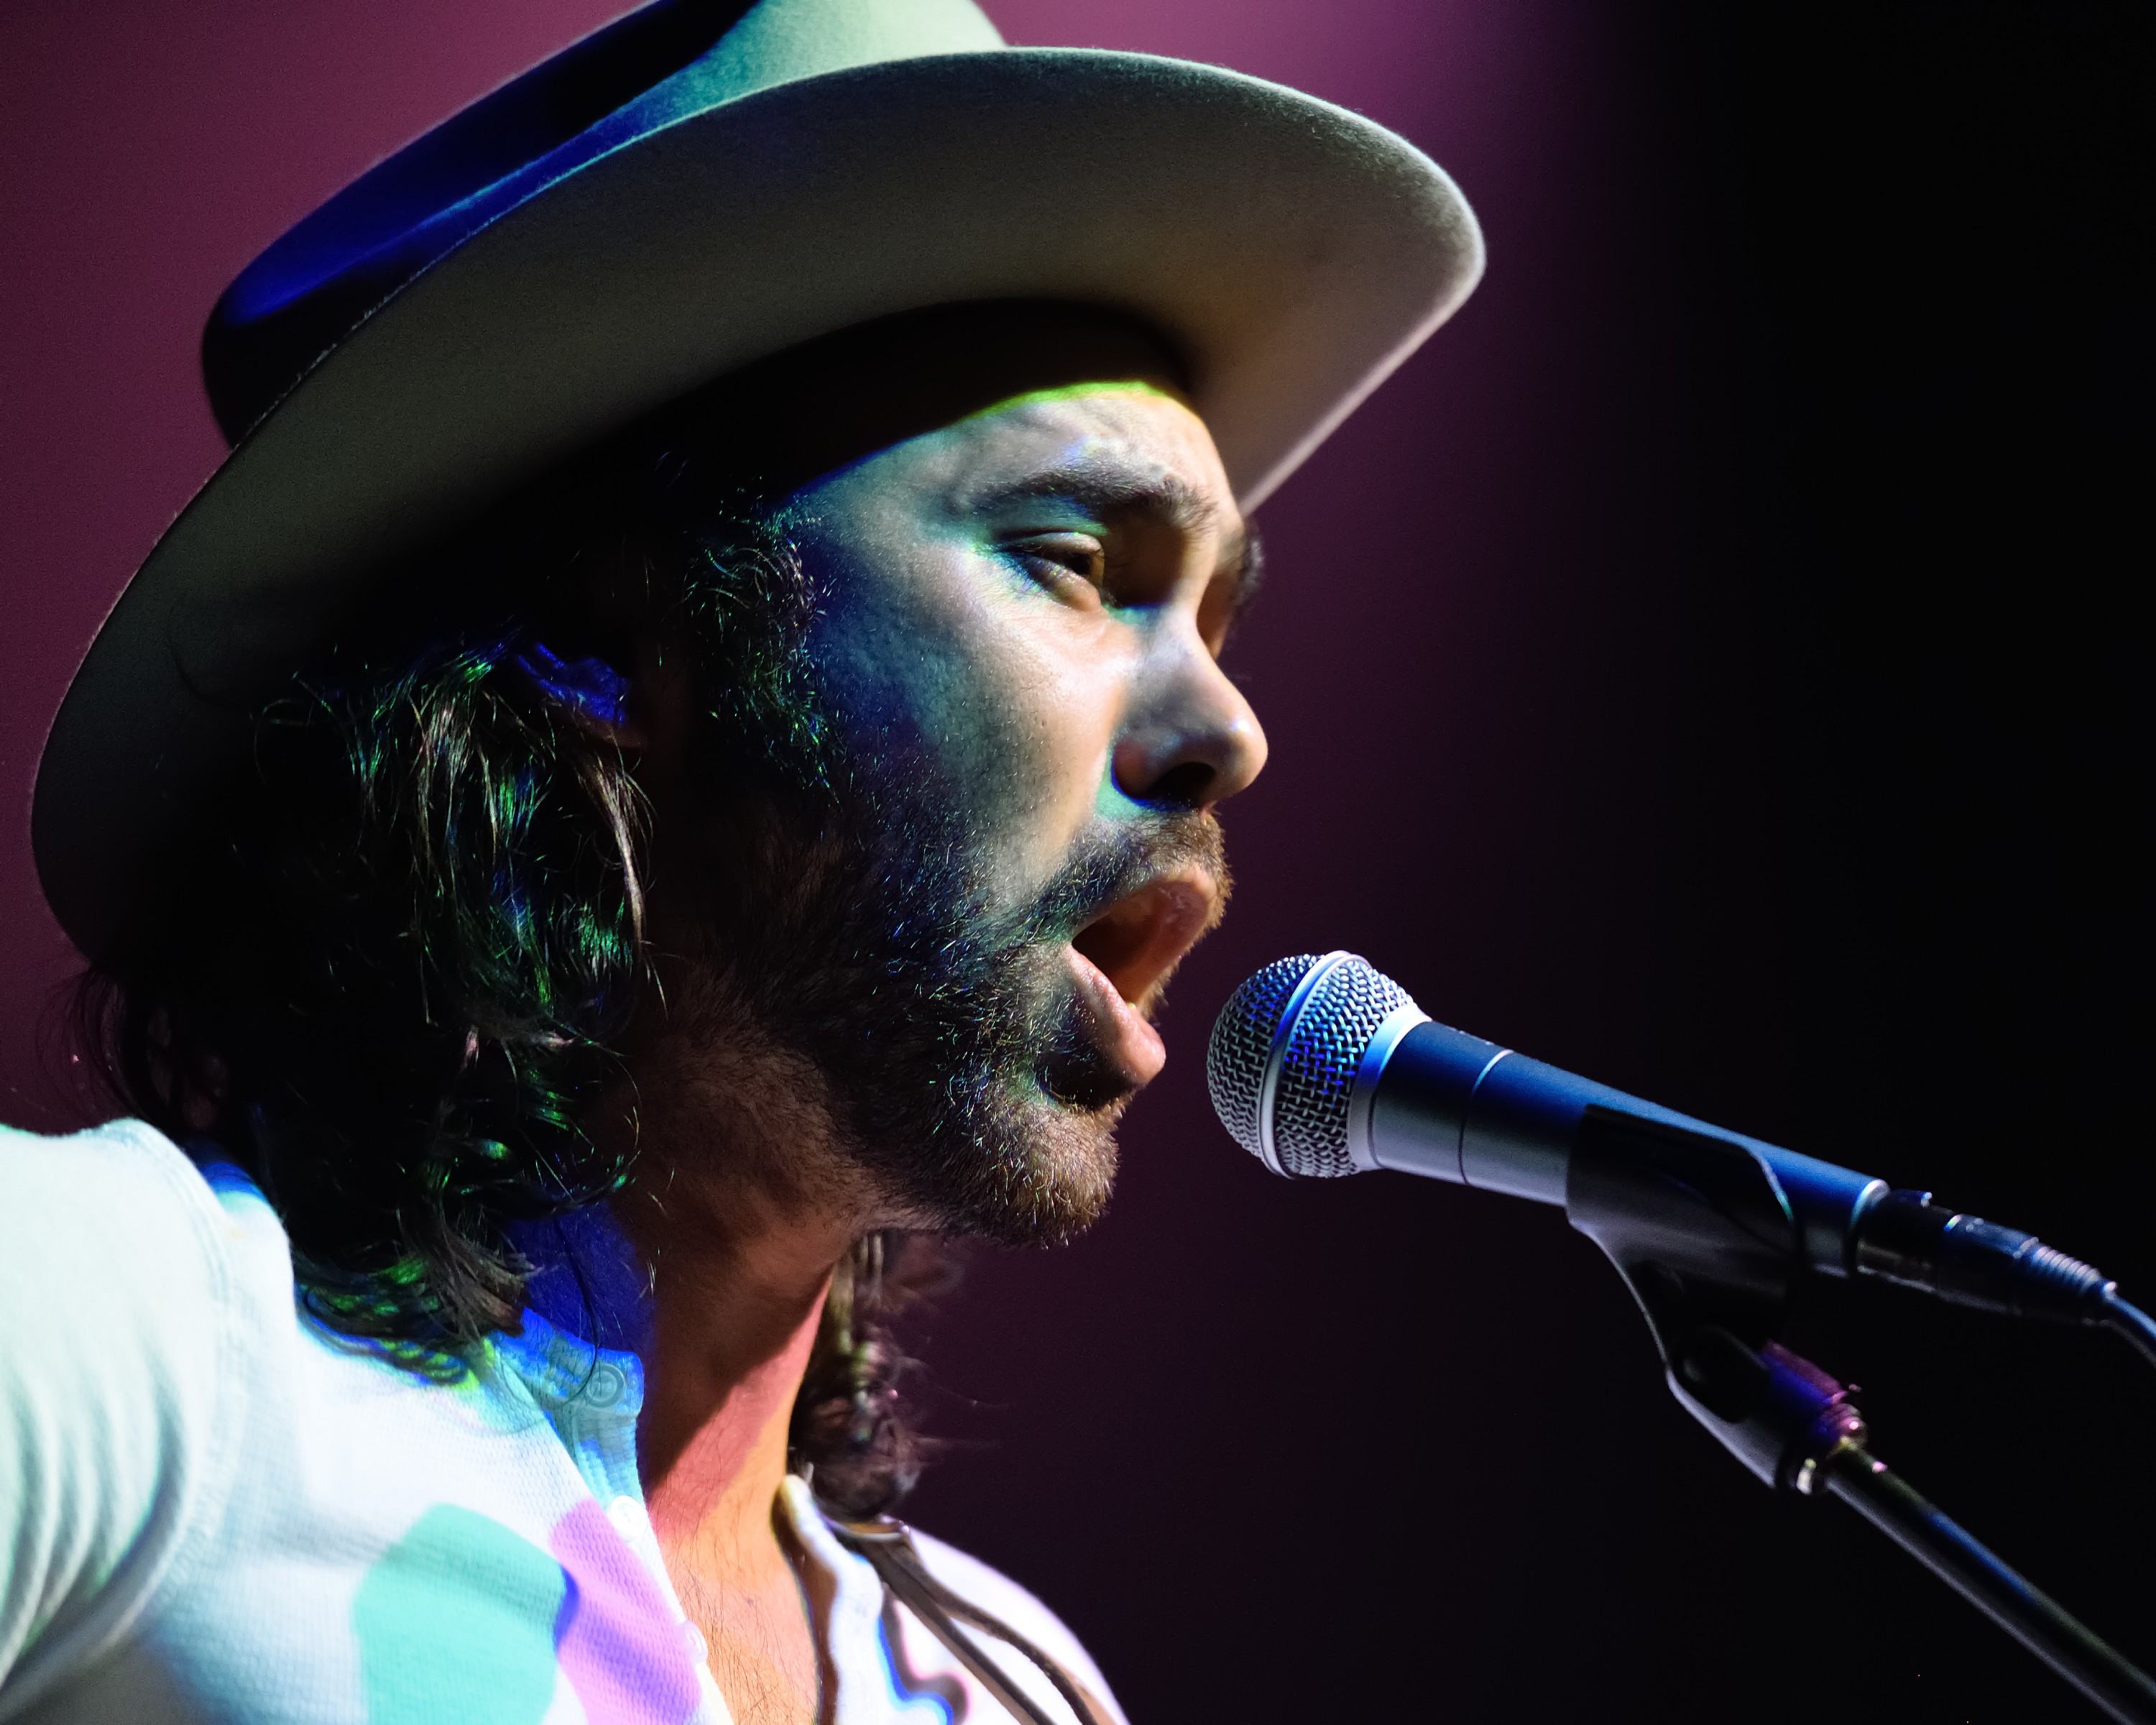 Shakey Graves @ The Imperial © Daniel Young